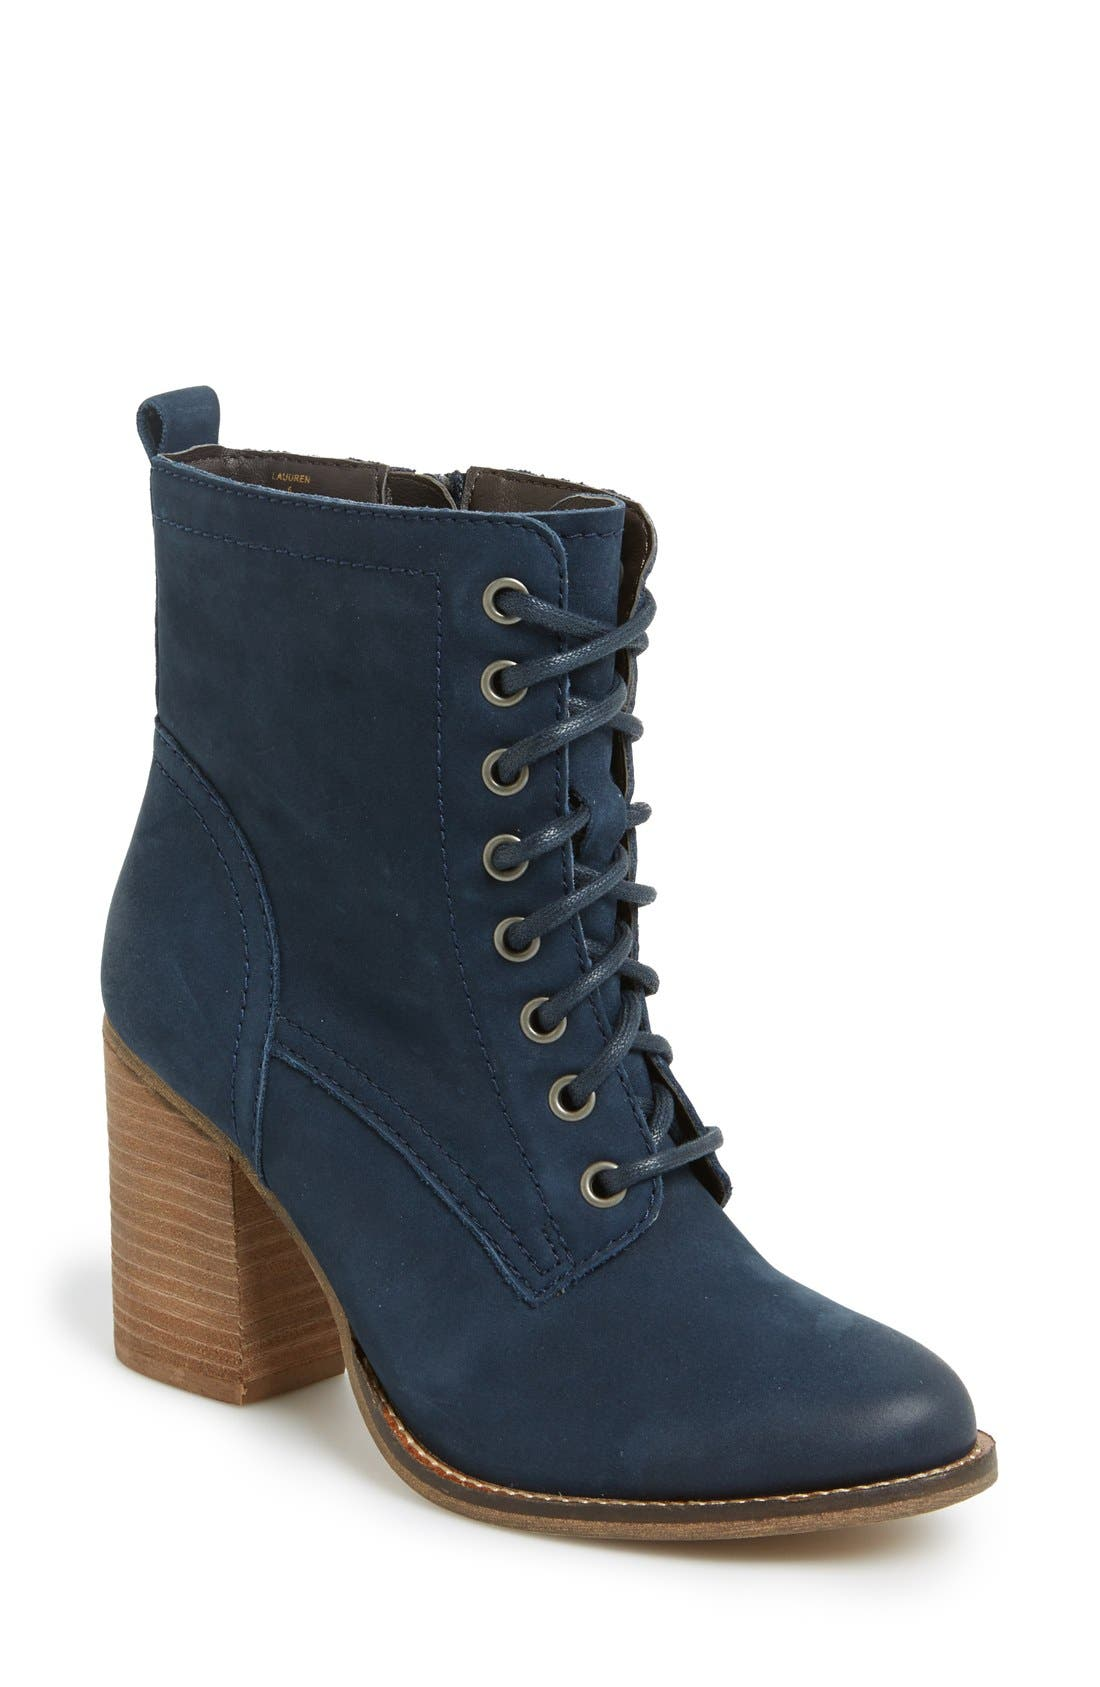 Main Image - Steve Madden 'Lauuren' Lace-Up Bootie (Women)